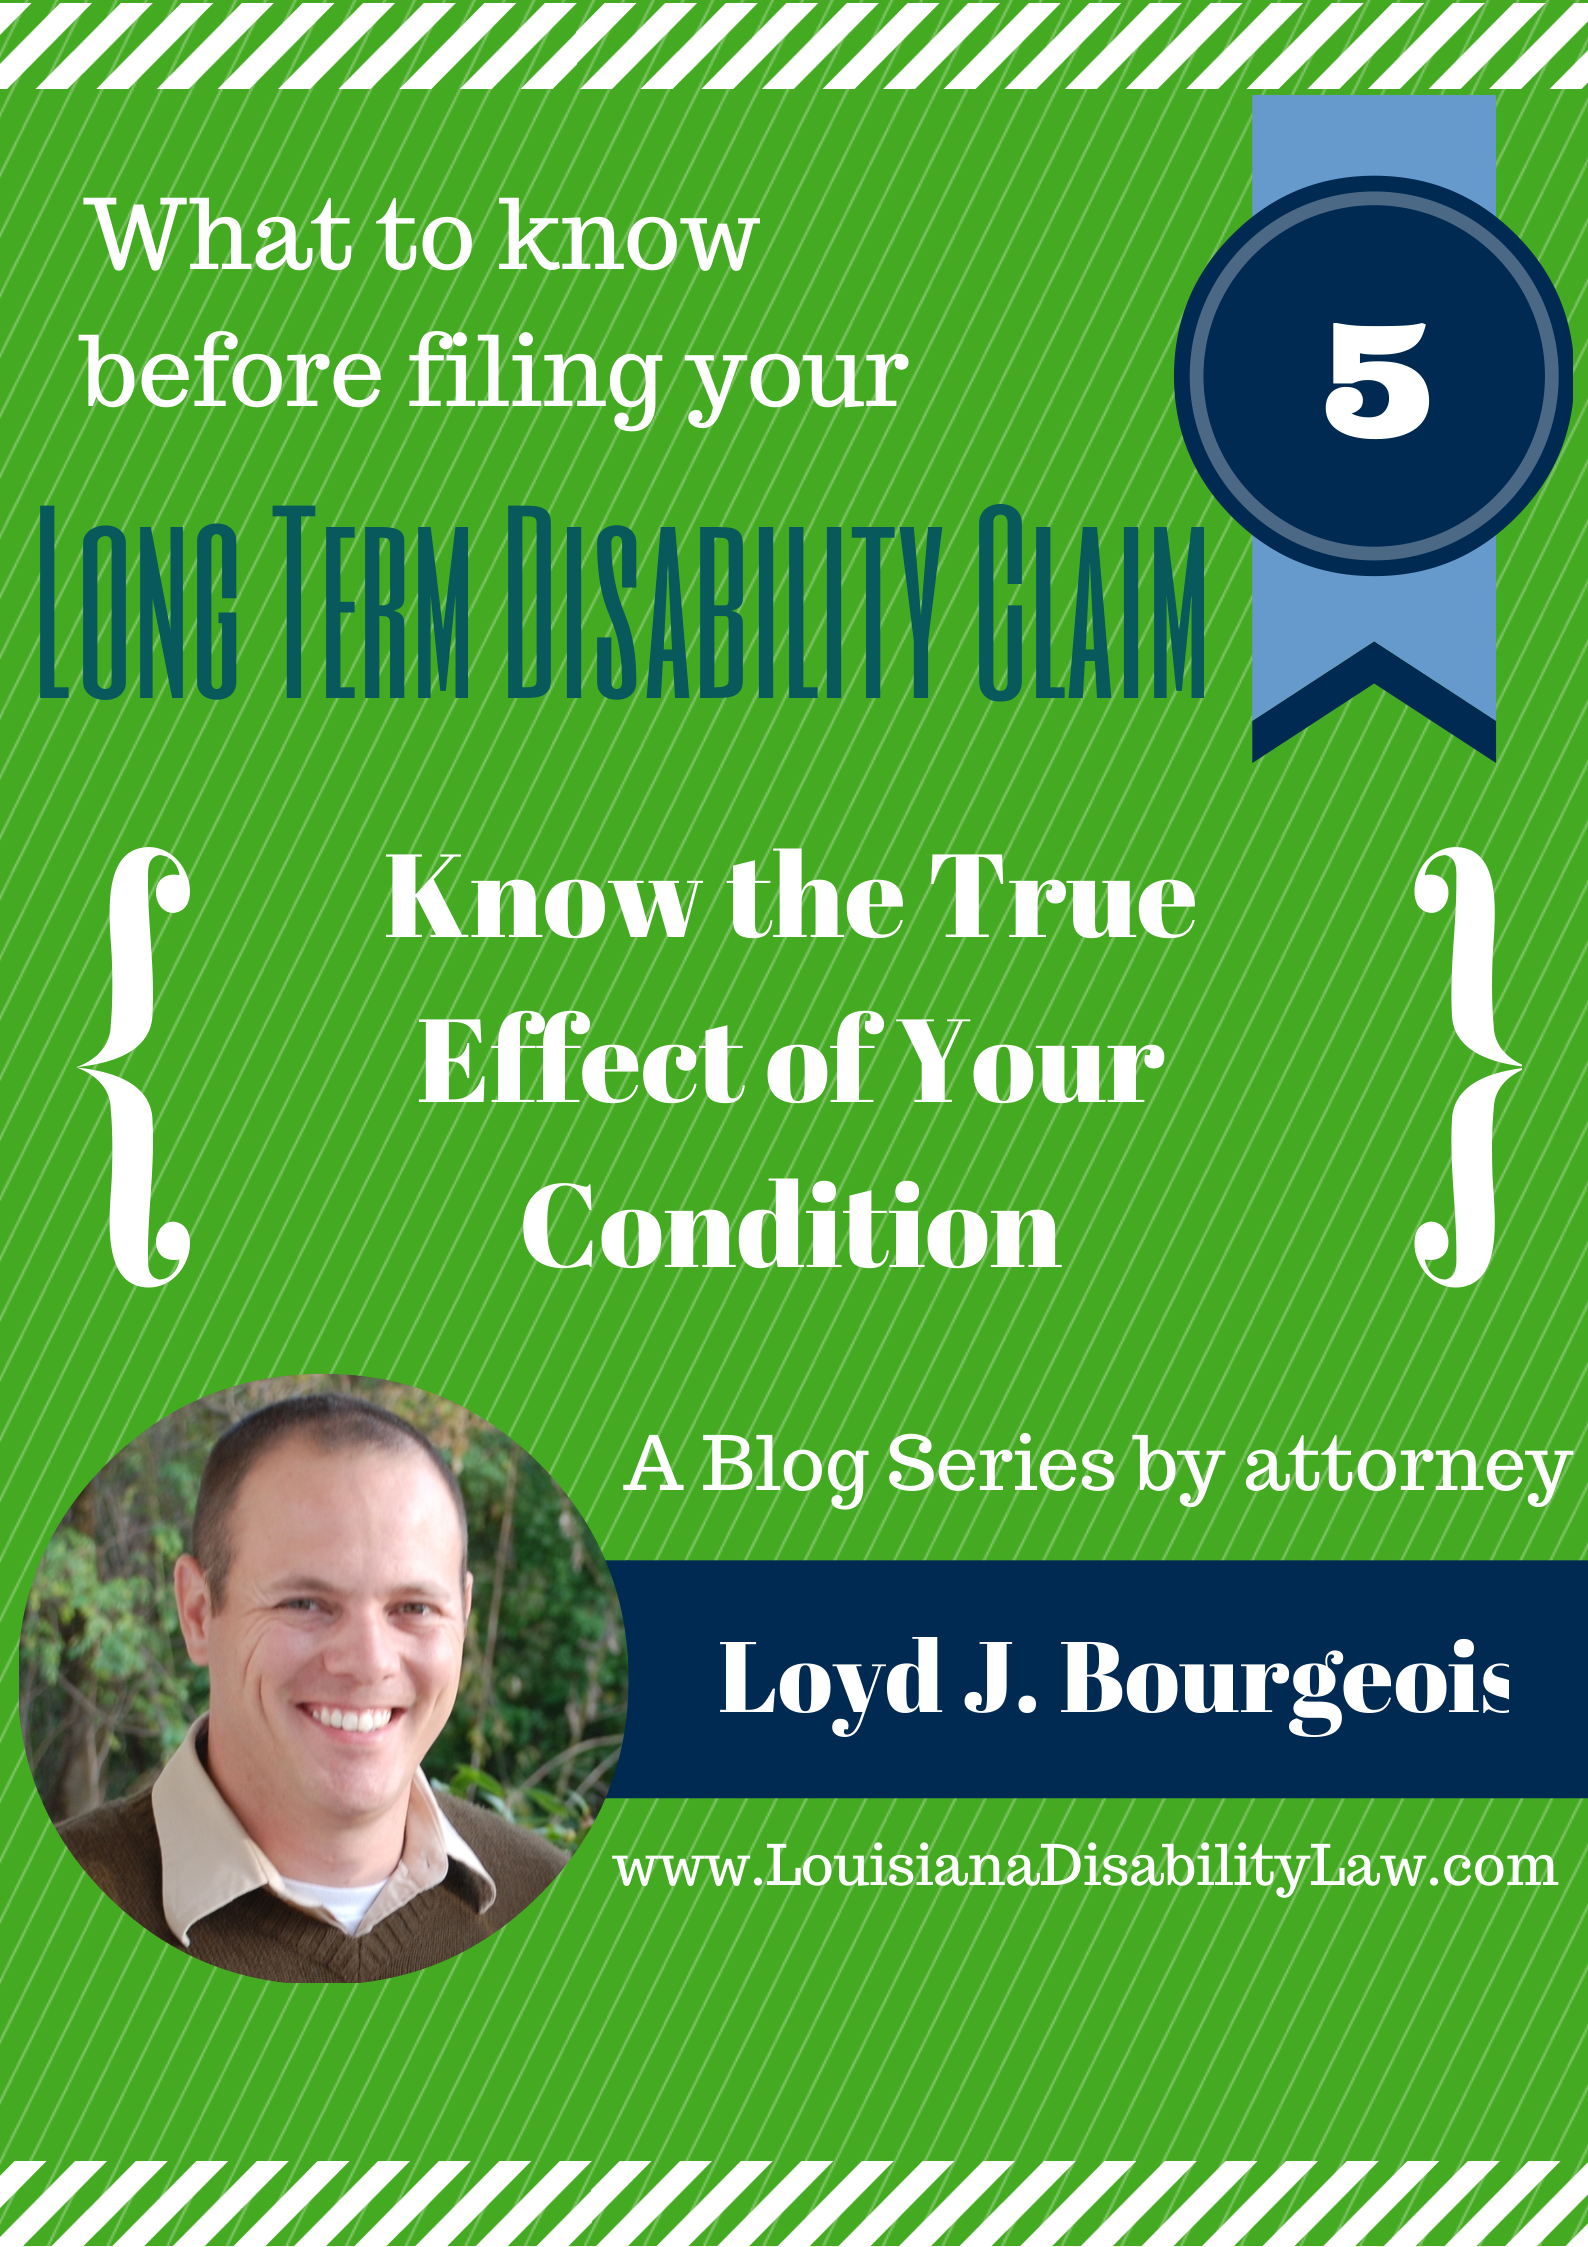 What to know before filing a Long-Term Disability Claim: The True Effect of your Condition